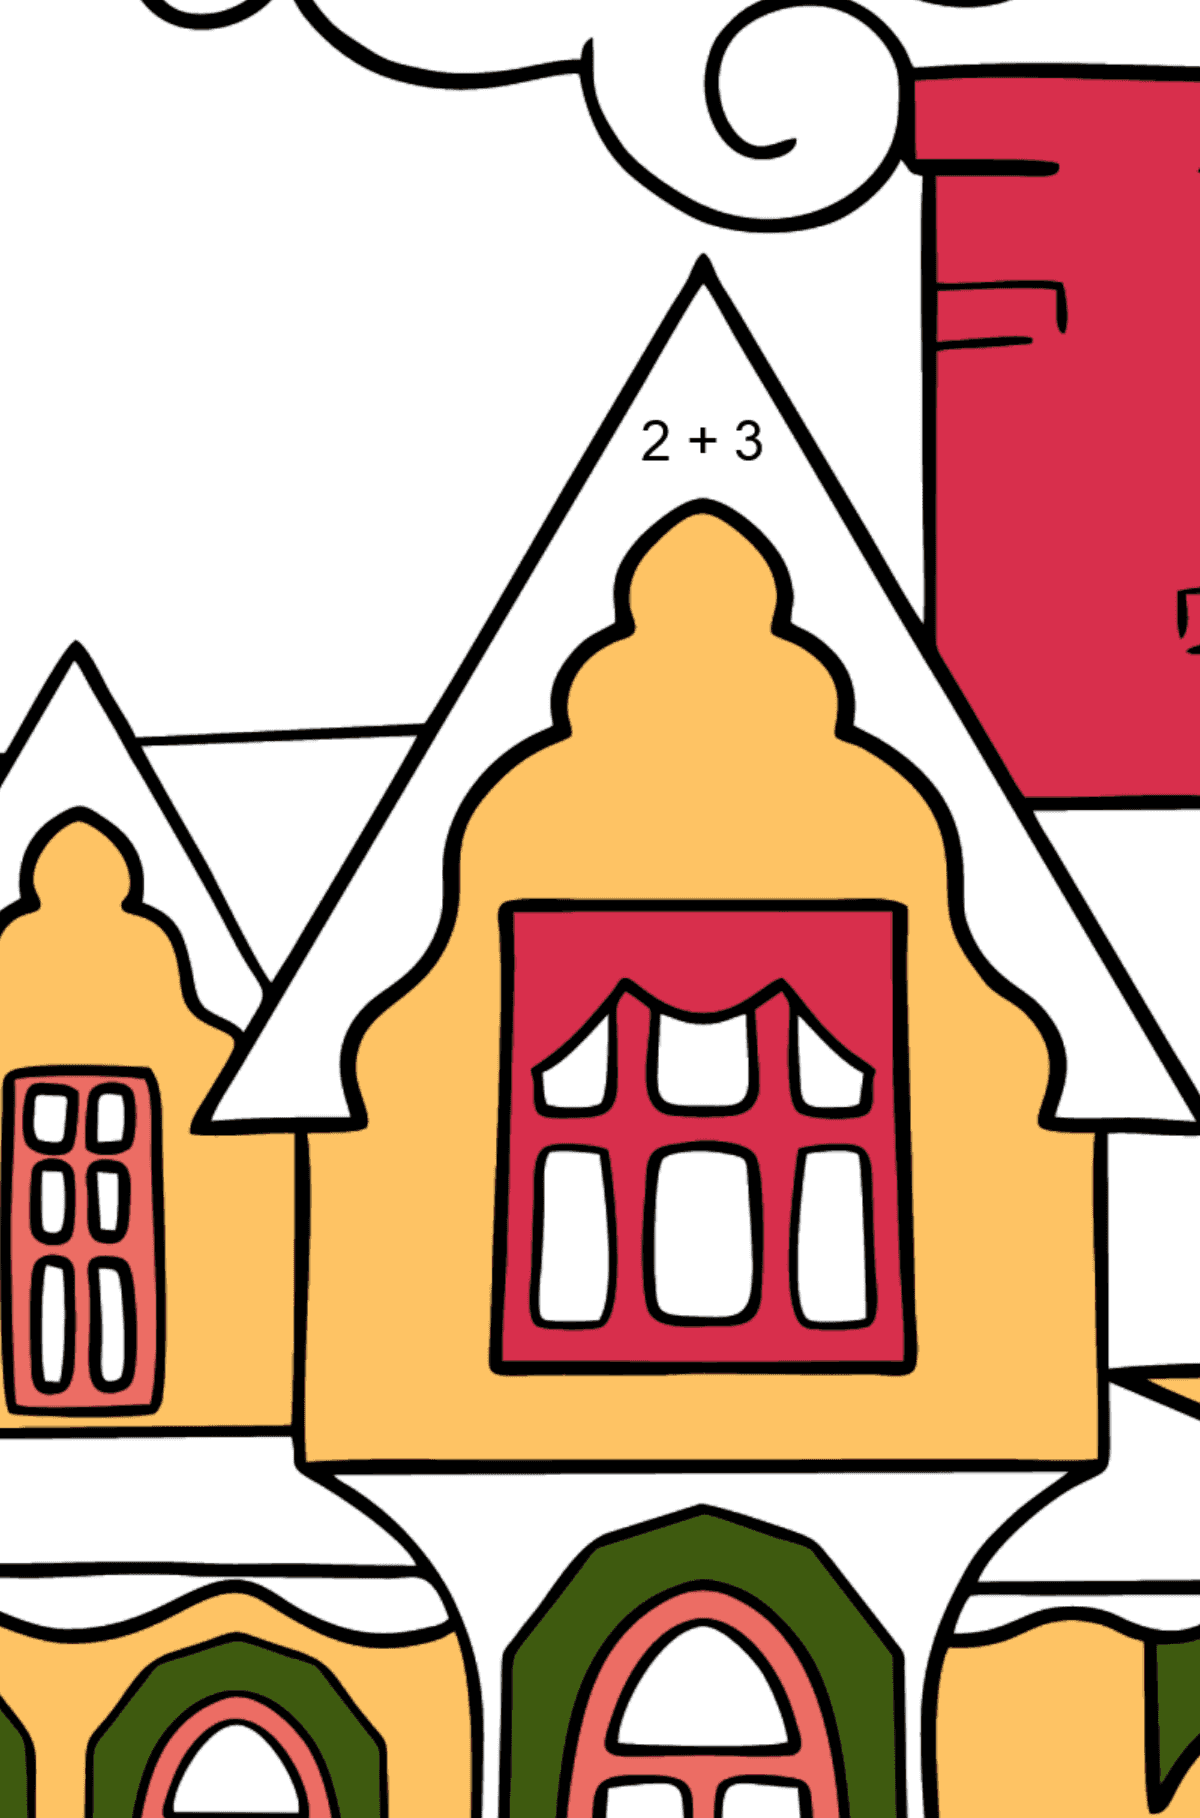 Simple Coloring Page - A Miraculous House - Math Coloring - Addition for Kids